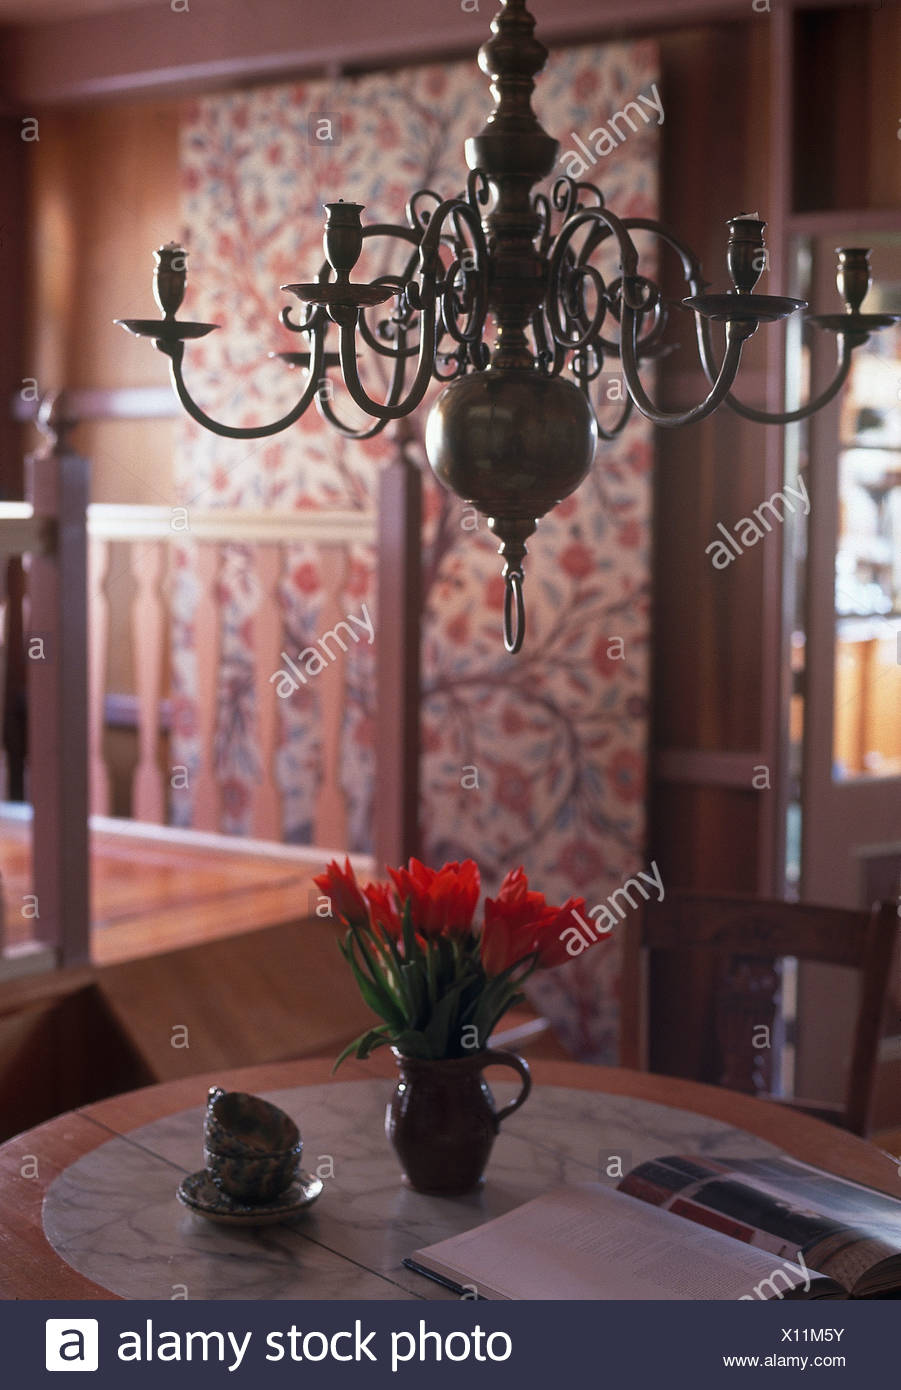 Antique Brass Chandelier Above Table With Jug Of Red Tulips In Country Dining  Room